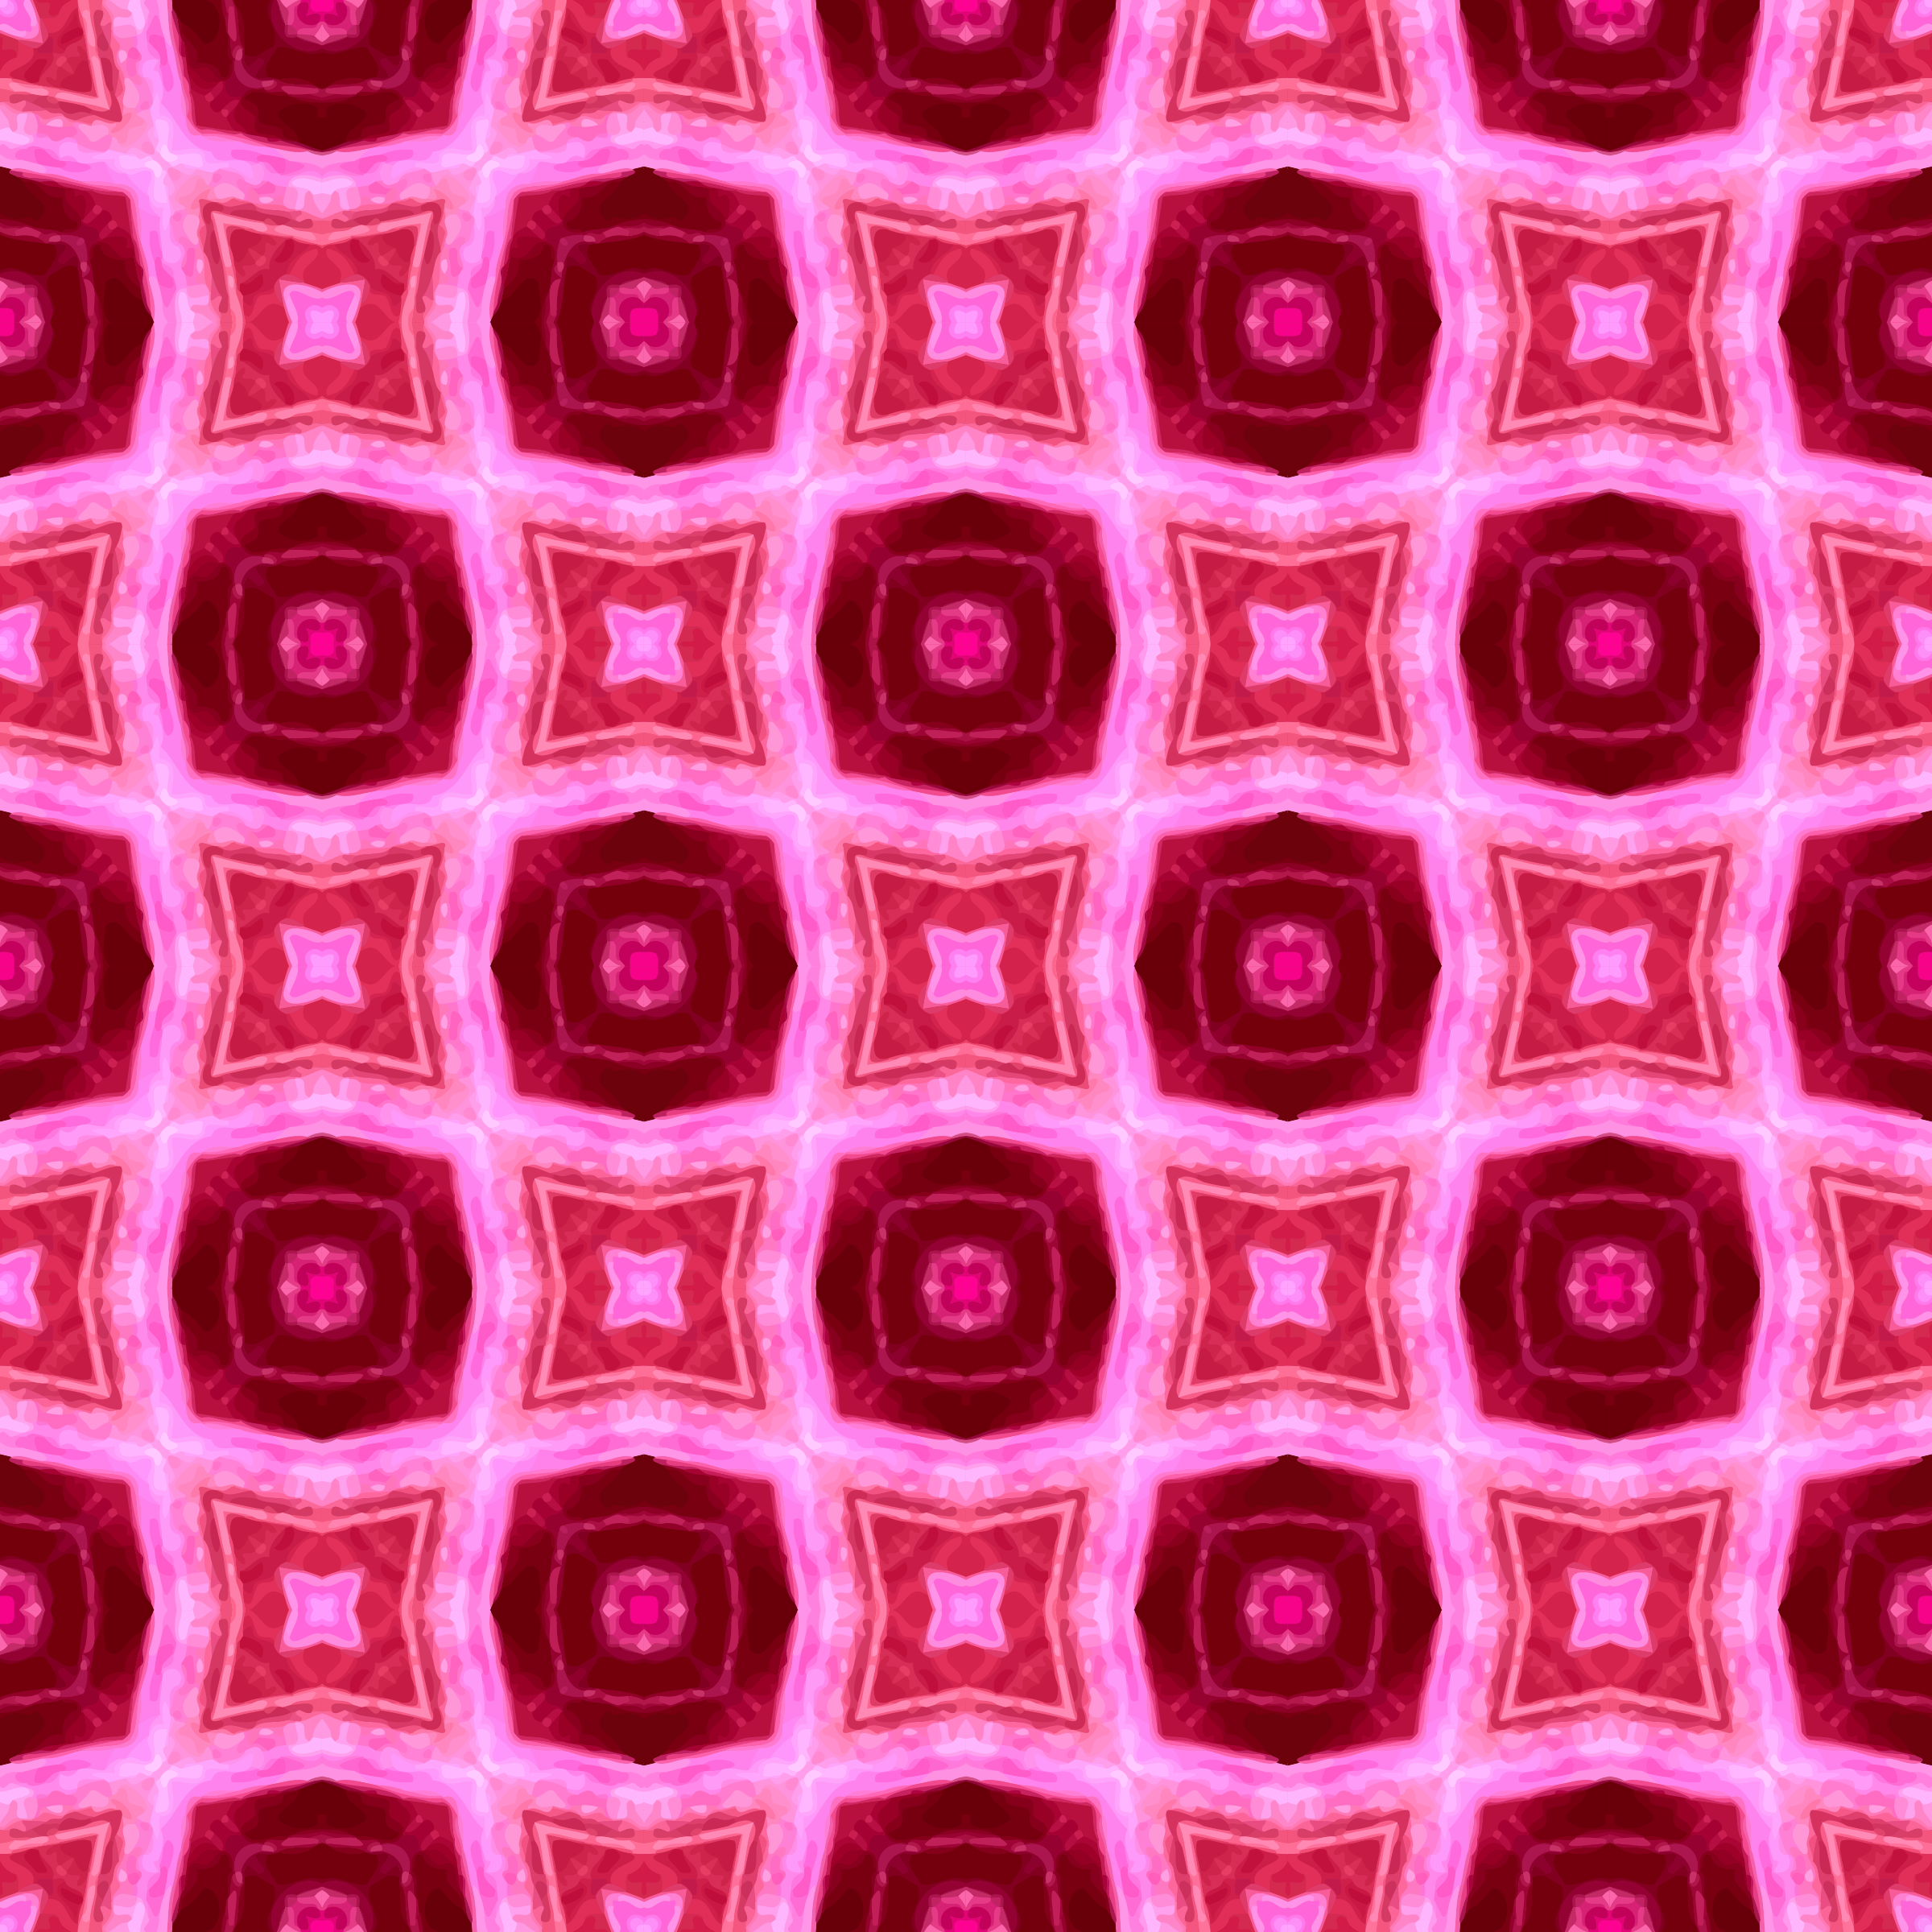 Background pattern 158 (colour 4) by Firkin